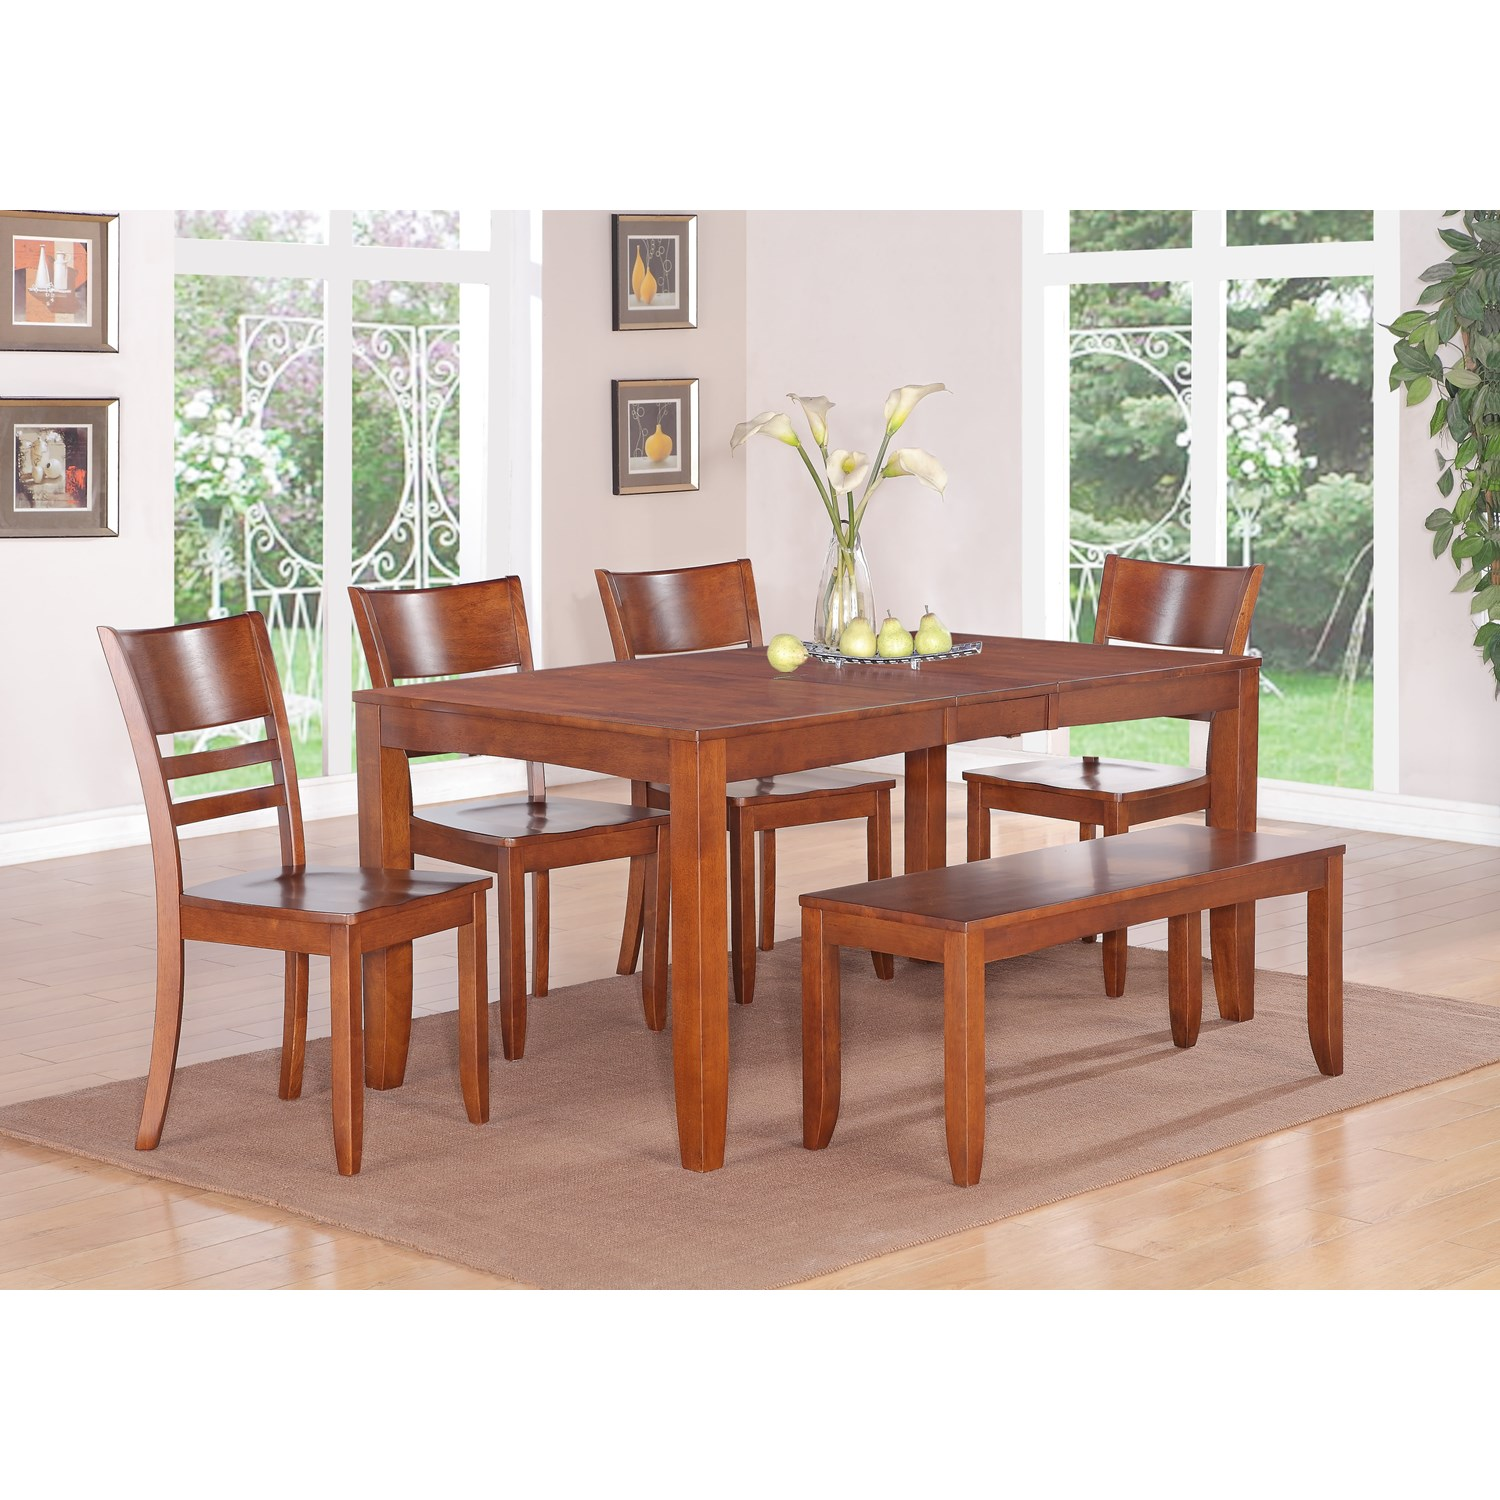 type of wood for furniture. parawood different types of wood what type is alder for furniture